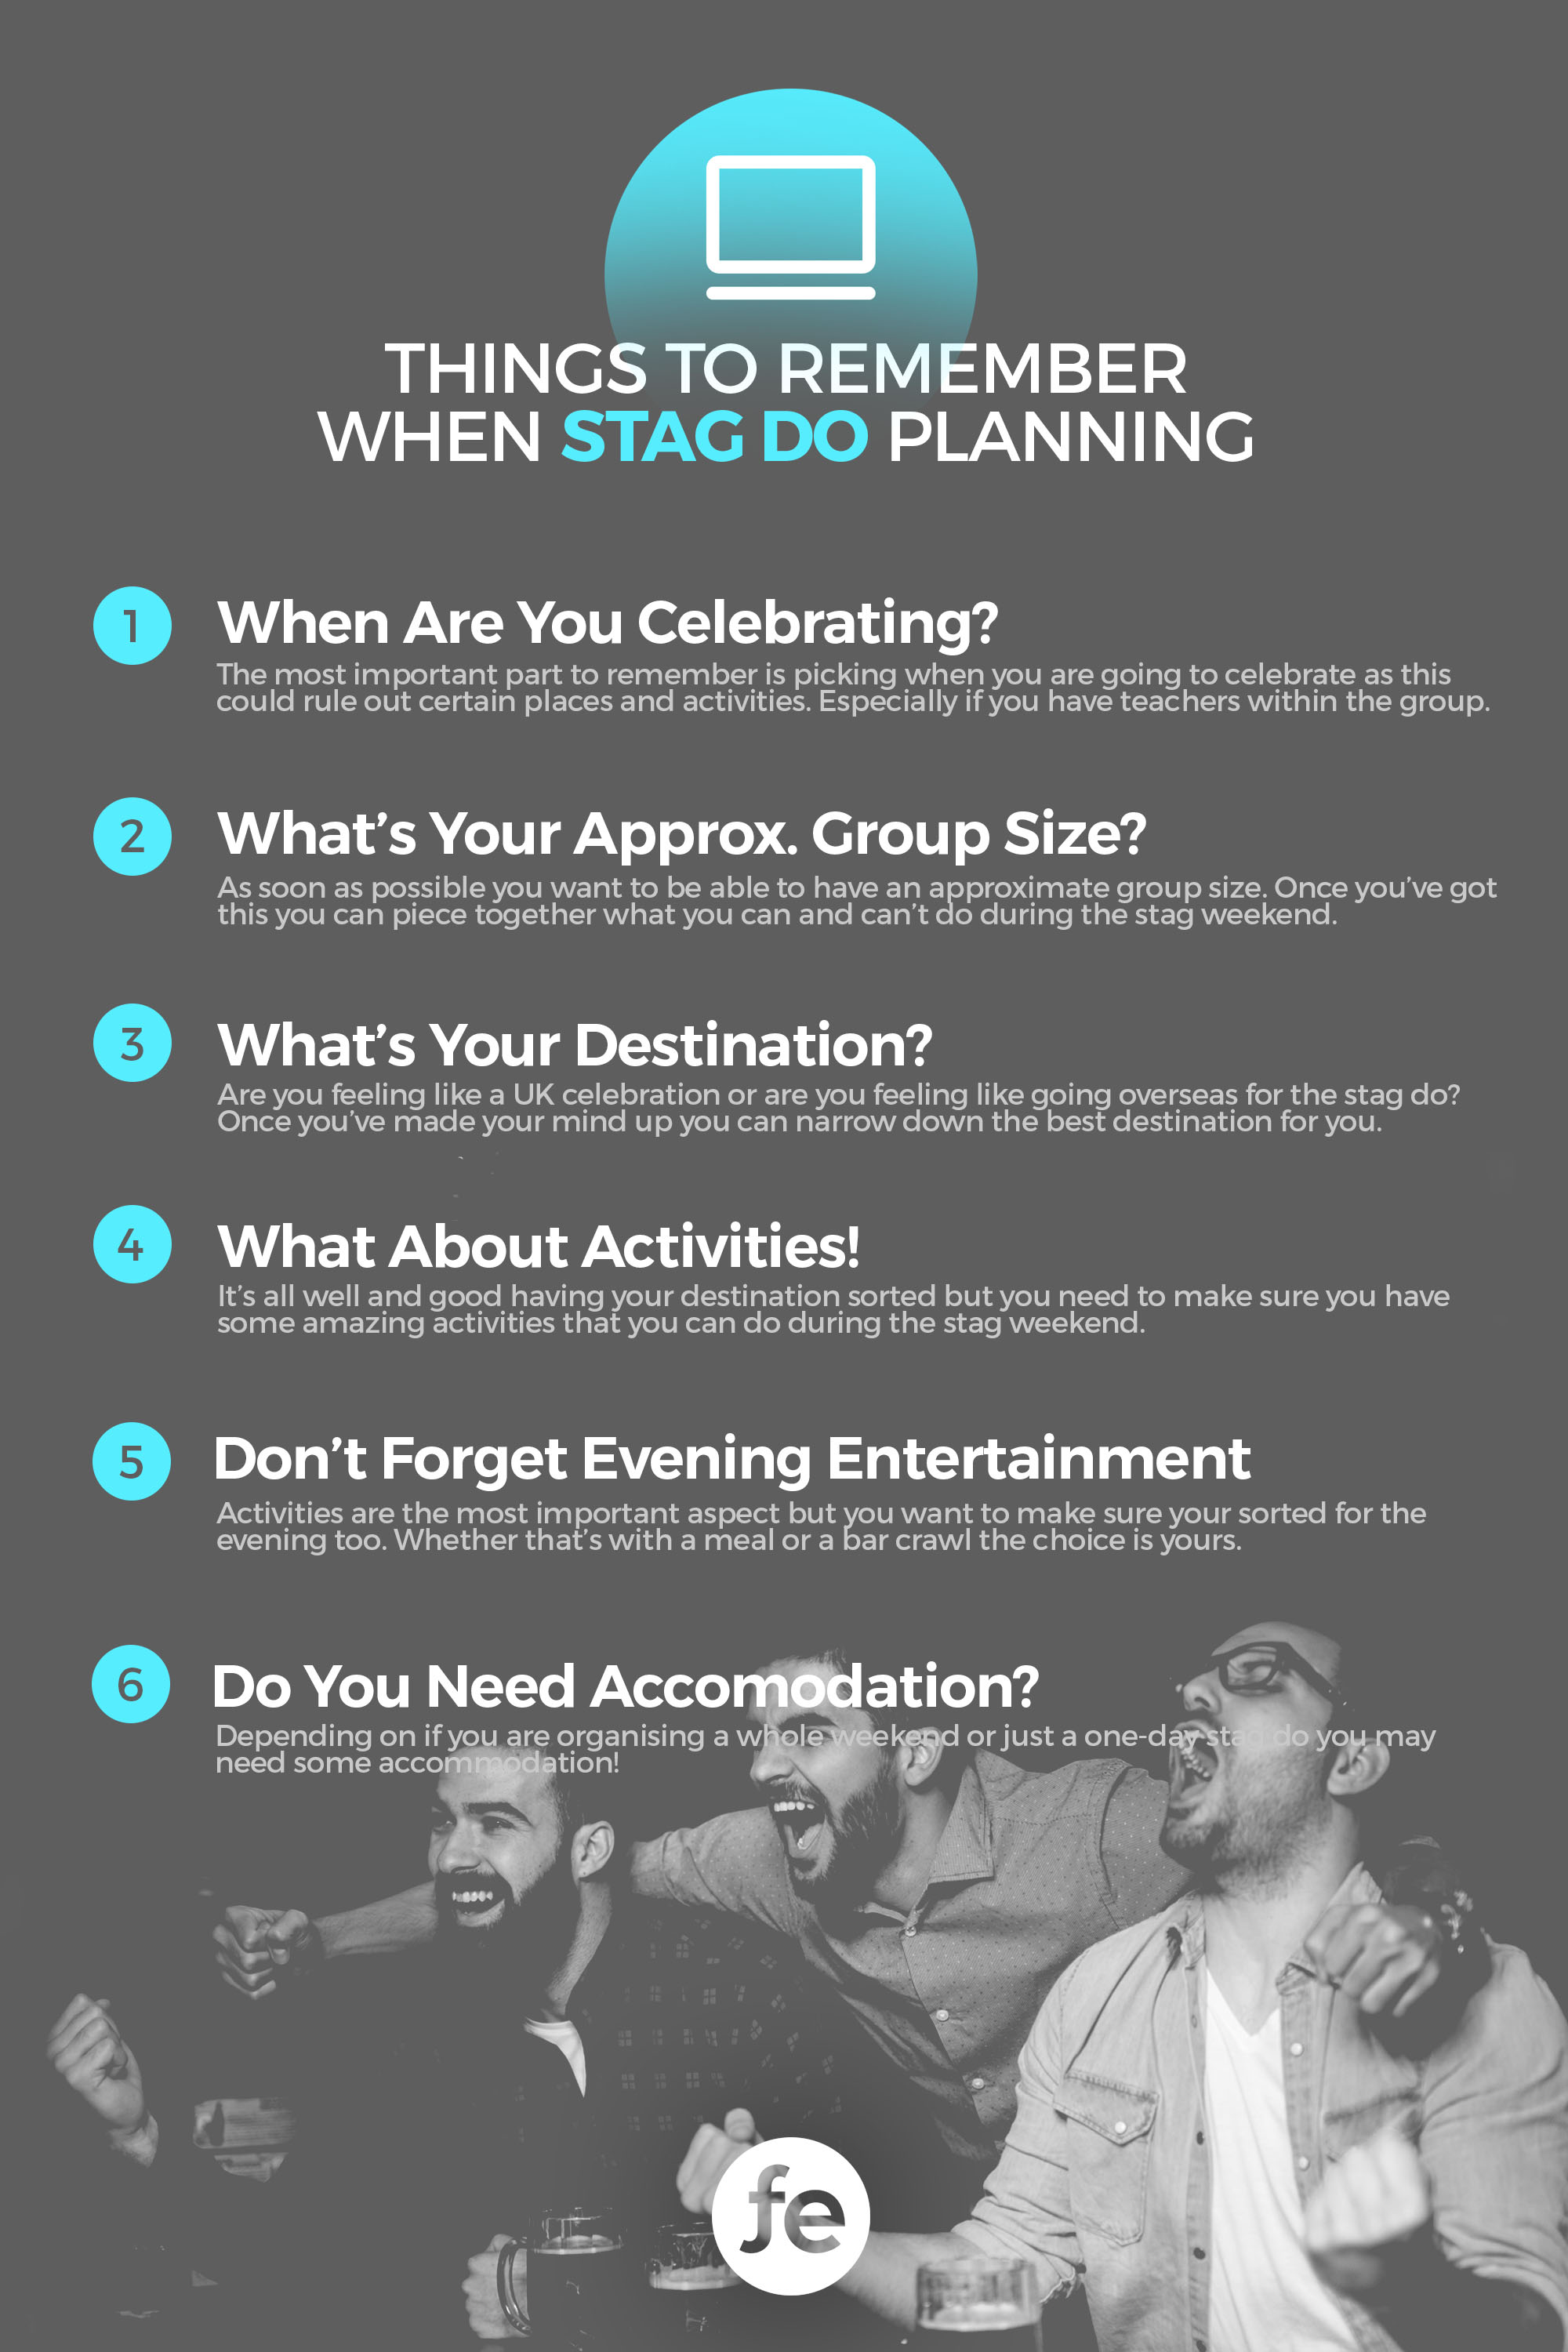 Things to Remember When Stag Do Planning